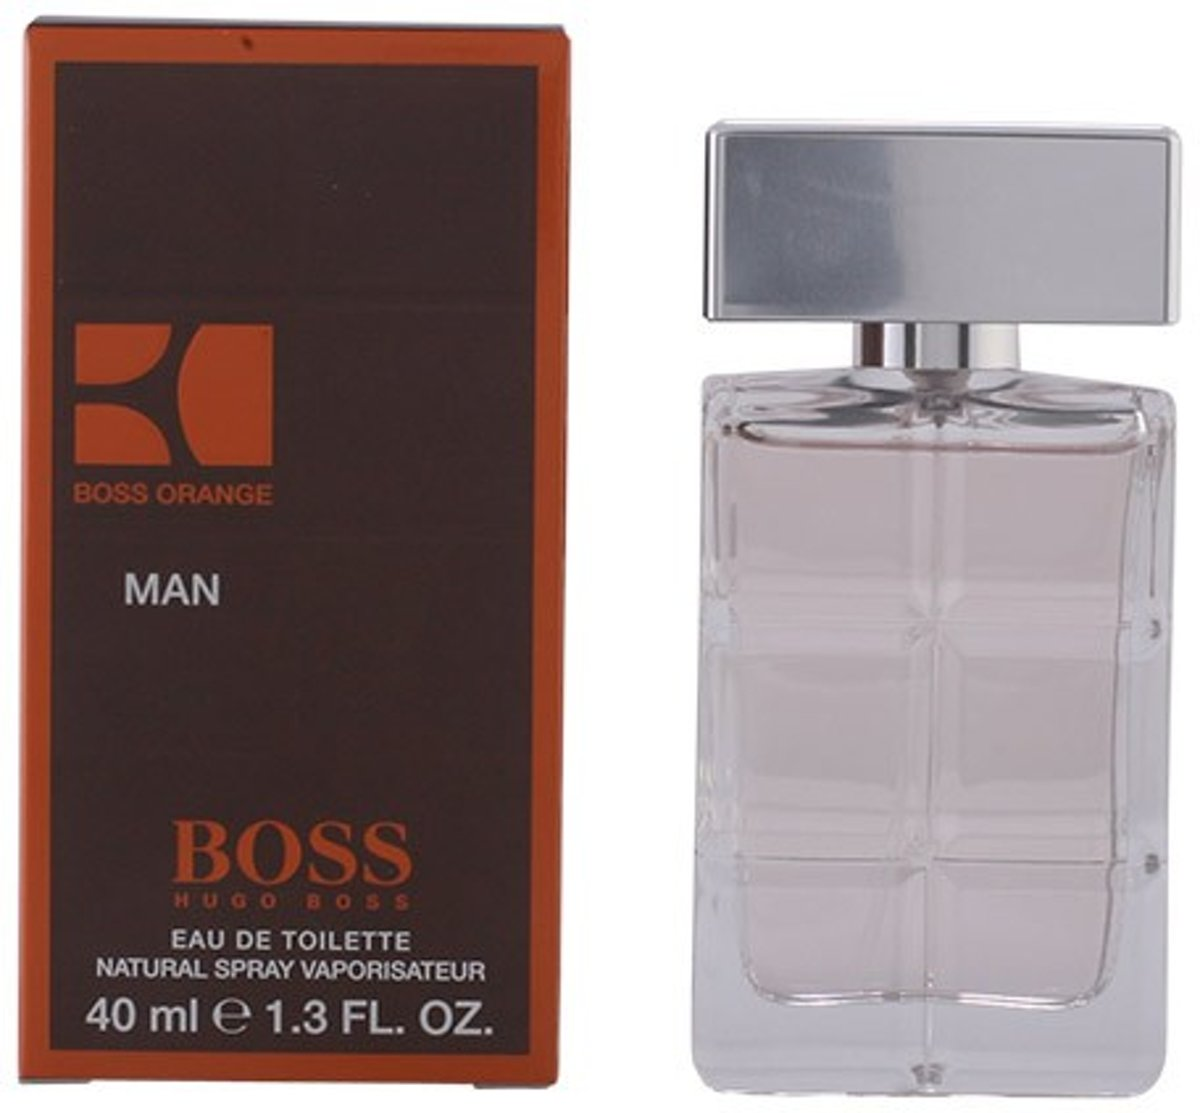 MULTI BUNDEL 3 stuks BOSS ORANGE MAN Eau de Toilette Spray 40 ml